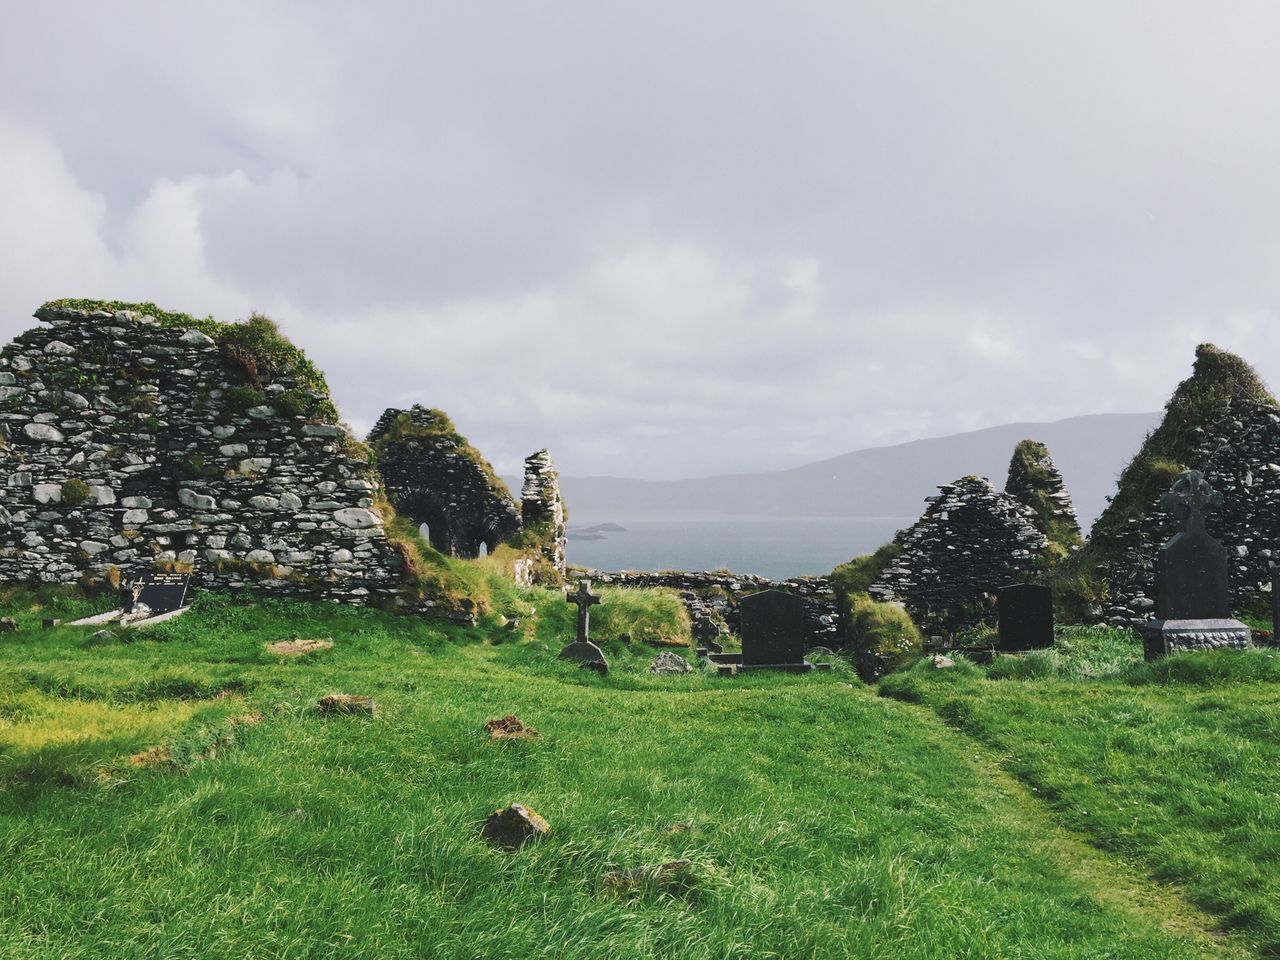 Graveyard Grass Beauty In Nature Nature Sky Growth Green Color Tranquil Scene Scenics Tranquility No People Tree Field Outdoors Landscape Cloud - Sky Day Built Structure Building Exterior Mountain Architecture Church Graveyard Celtic Ireland